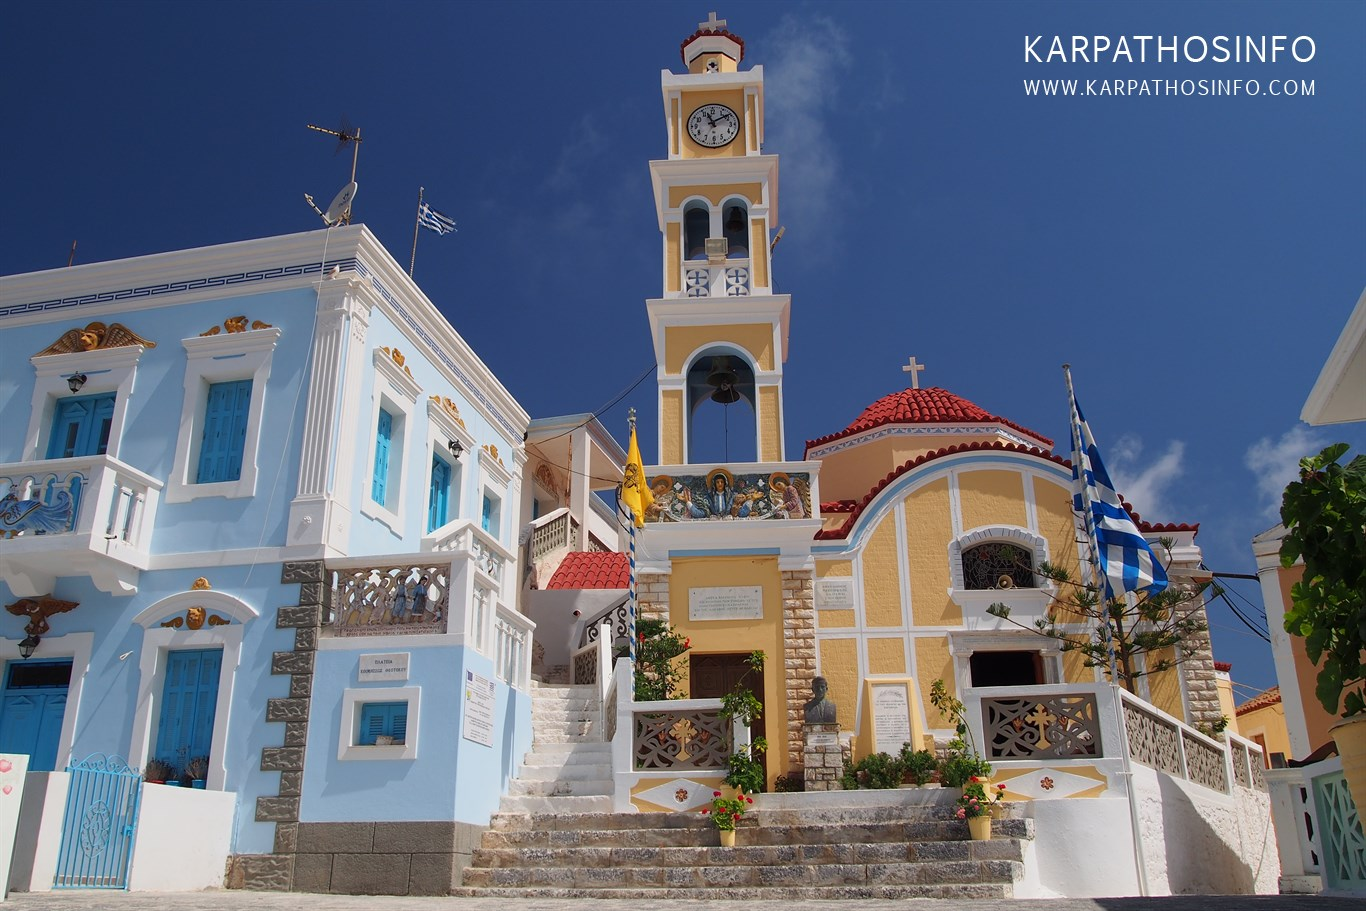 Olympos main square and church, Karpathos